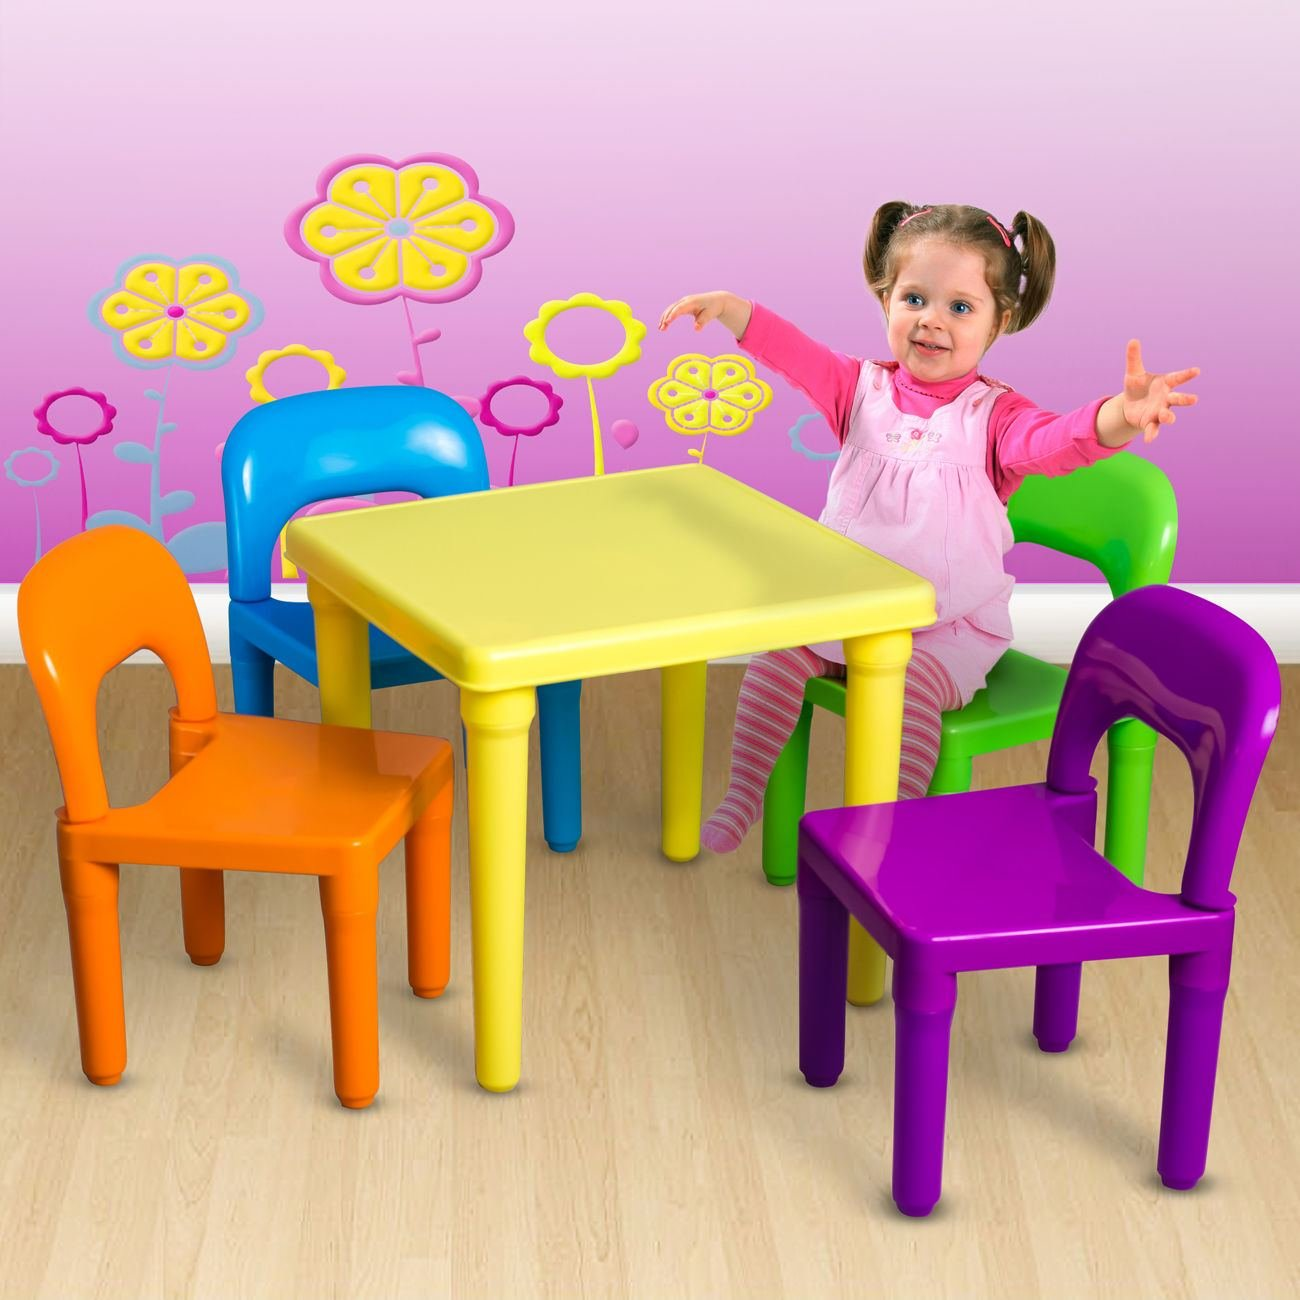 Amazon.com Kids Table and Chairs Play Set Toddler Child Toy Activity Furniture In-Outdoor Toys u0026 Games  sc 1 st  Amazon.com & Amazon.com: Kids Table and Chairs Play Set Toddler Child Toy ...